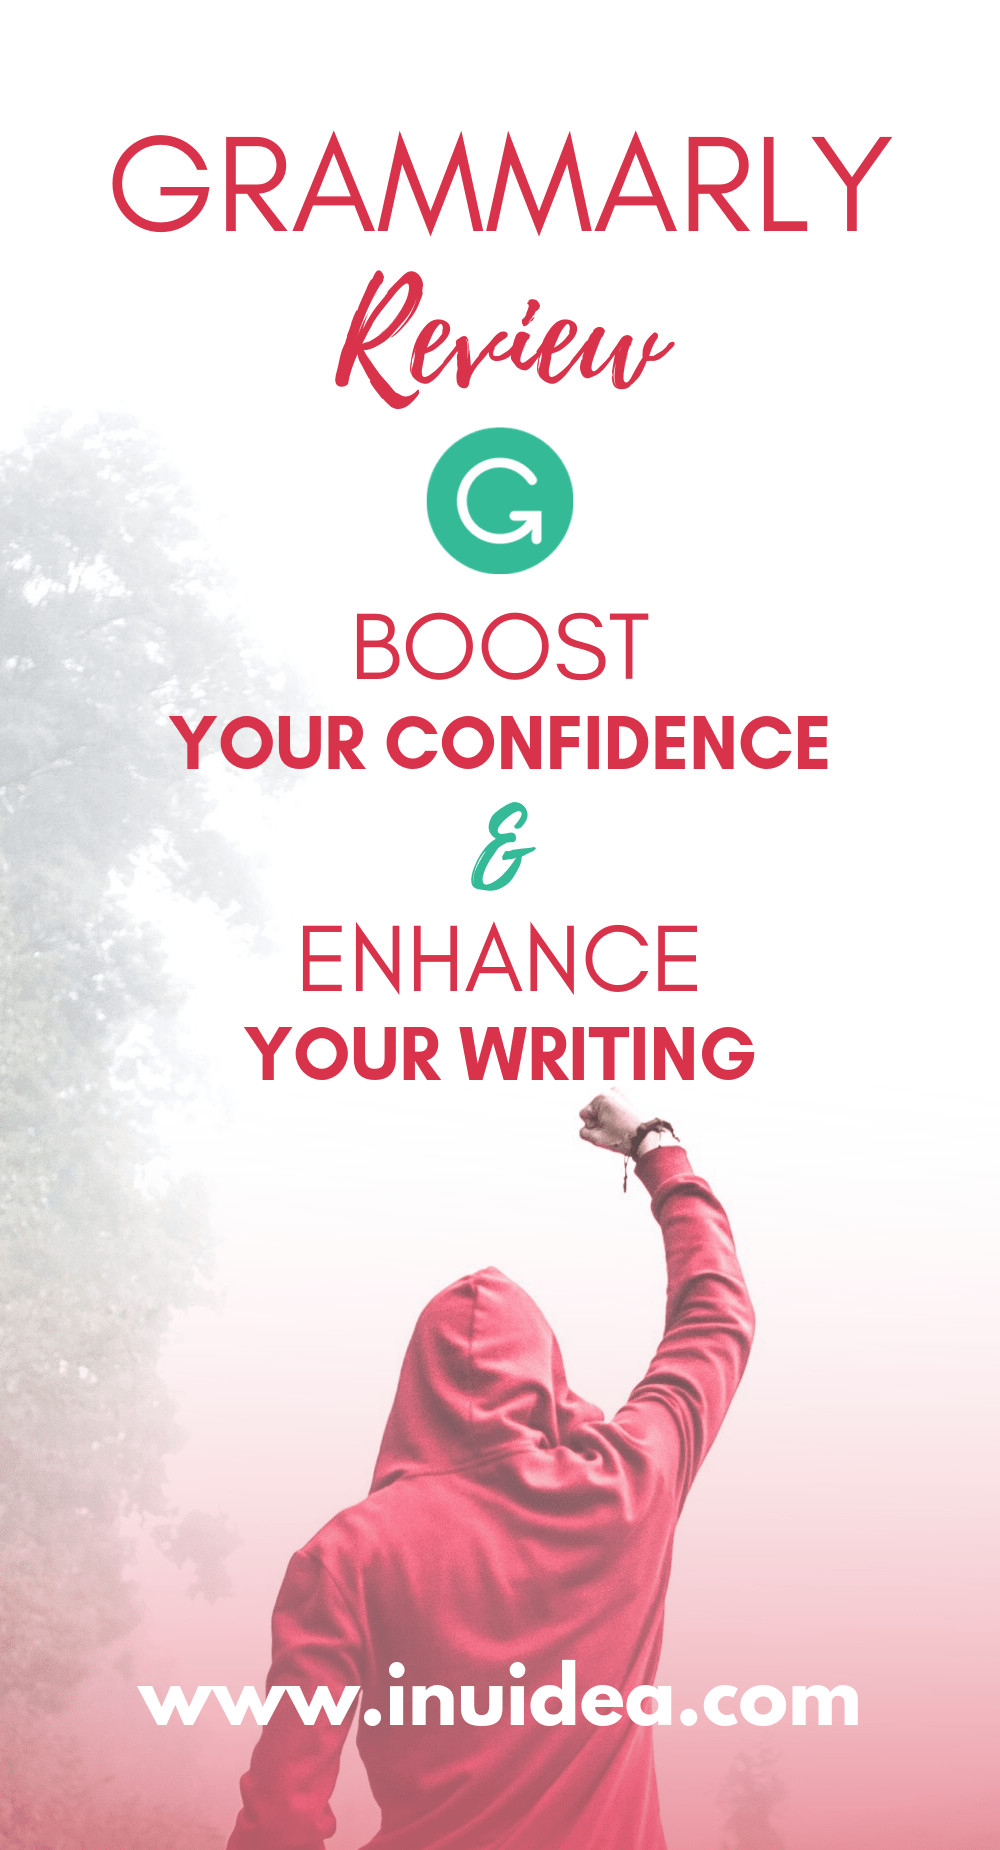 Buy Proofreading Software Grammarly Where To Get